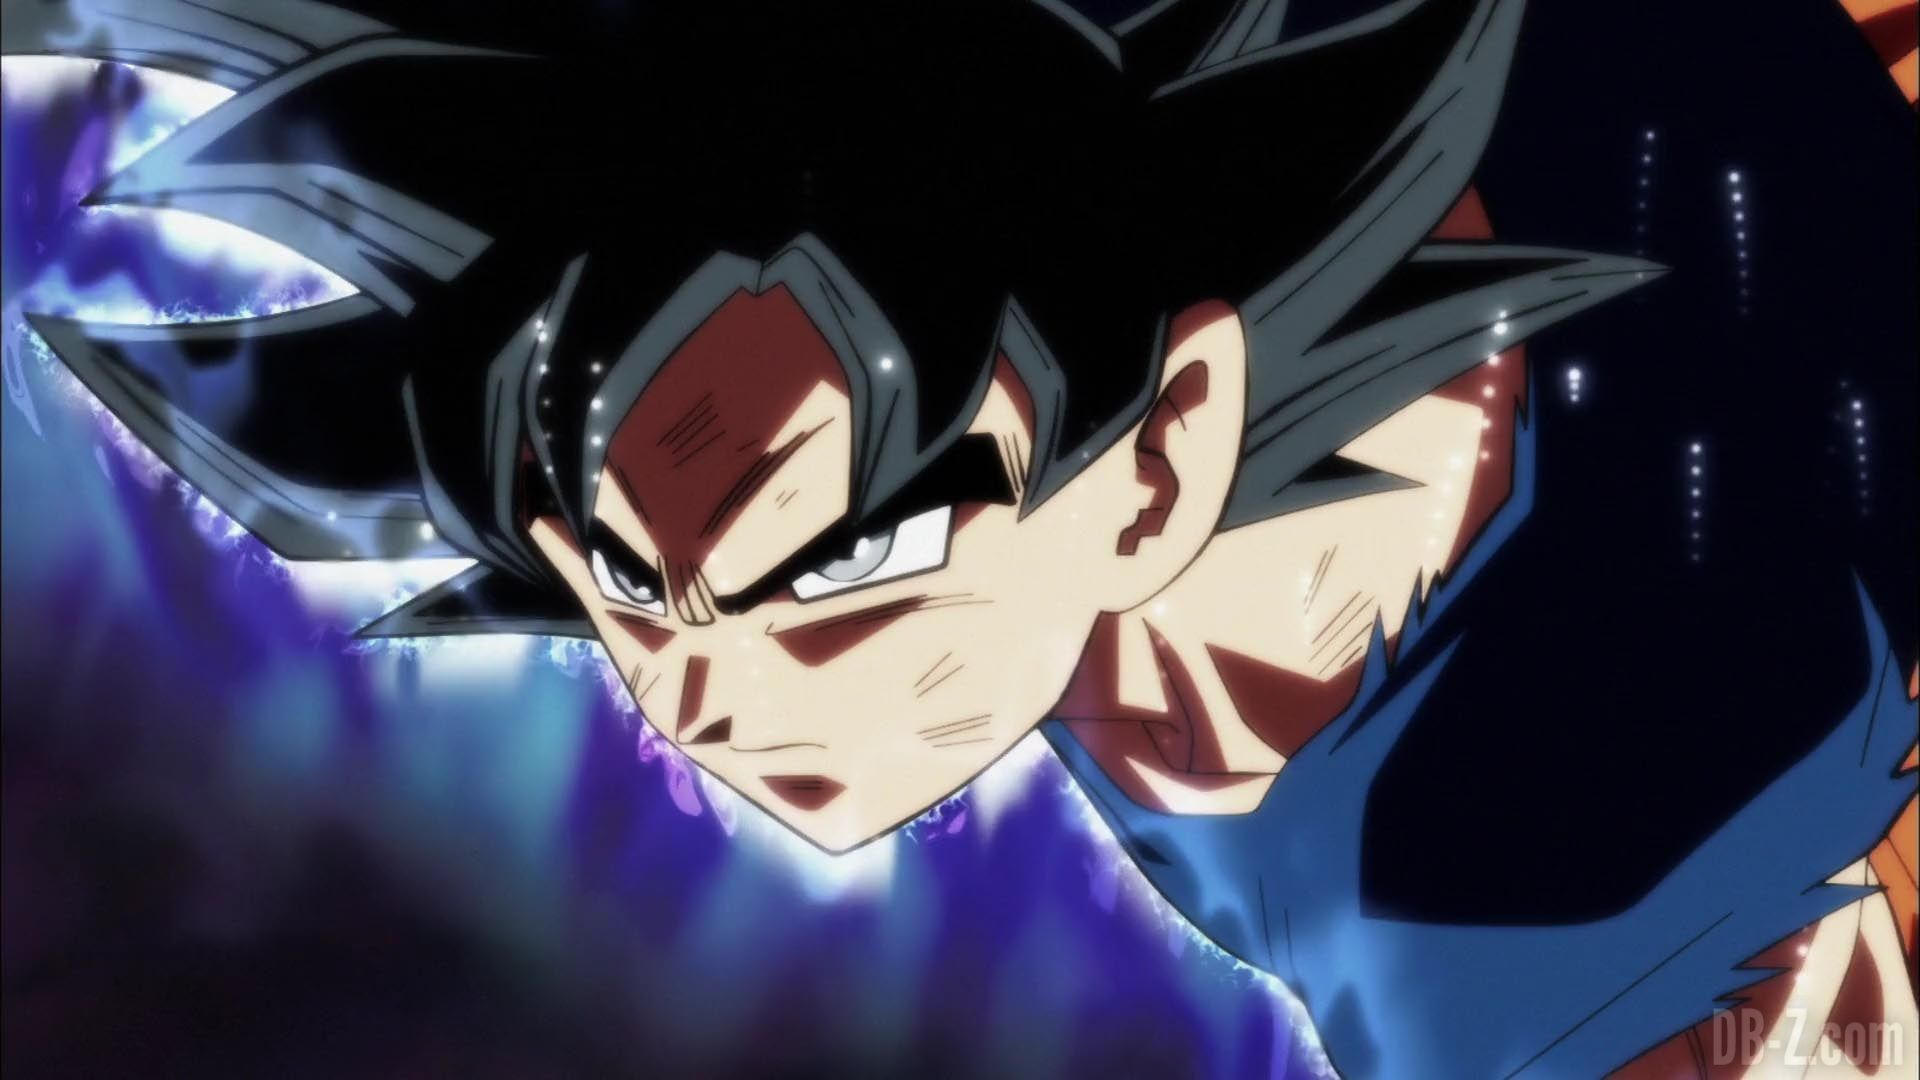 Dragon Ball Super Episode 109 110 261 Goku Ultra Instinct Yeux Argentes Sangoku Dragon Ball Super Anime Mangas